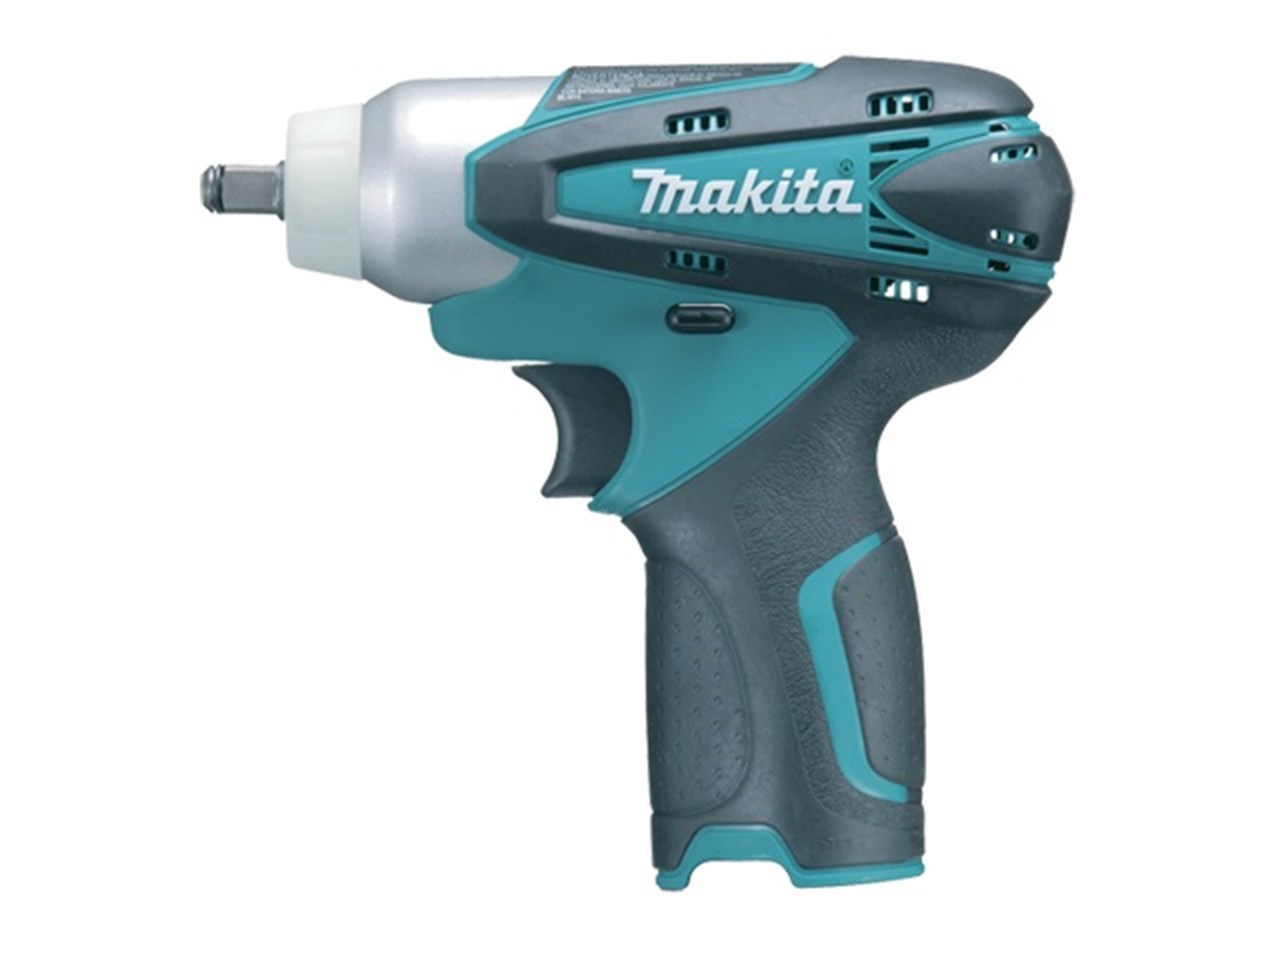 makita tw100dz lxt 3 8 impact wrench bare unit only. Black Bedroom Furniture Sets. Home Design Ideas